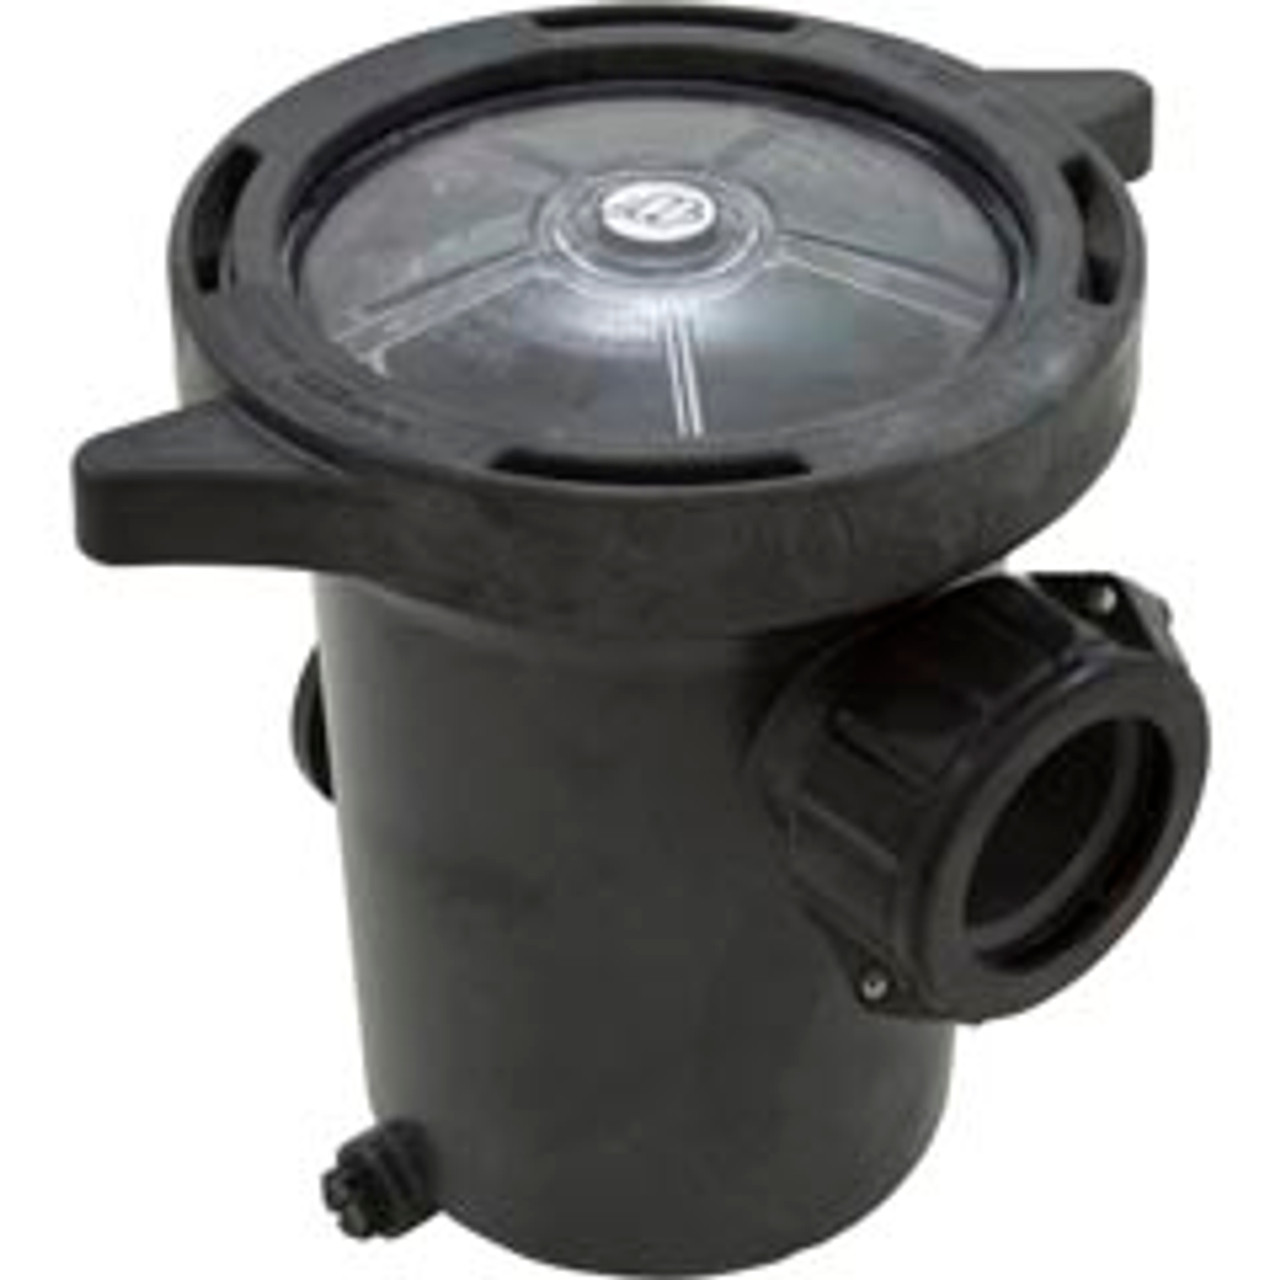 """Waterway, Strainer, Pot, Trap, Assembly, 2"""" Union, 2"""" MBT, FREE SHIPPING, 310-6600, 223489 , 310-5560 , 3106600 , 319-3228 , 319-3270 , 319-4100 , 5081-20A , 5081-210 , 5081-21A , 5081-33 , 806105063748 , WW3106600B , WWP-101-8061 , WWP3106600"""